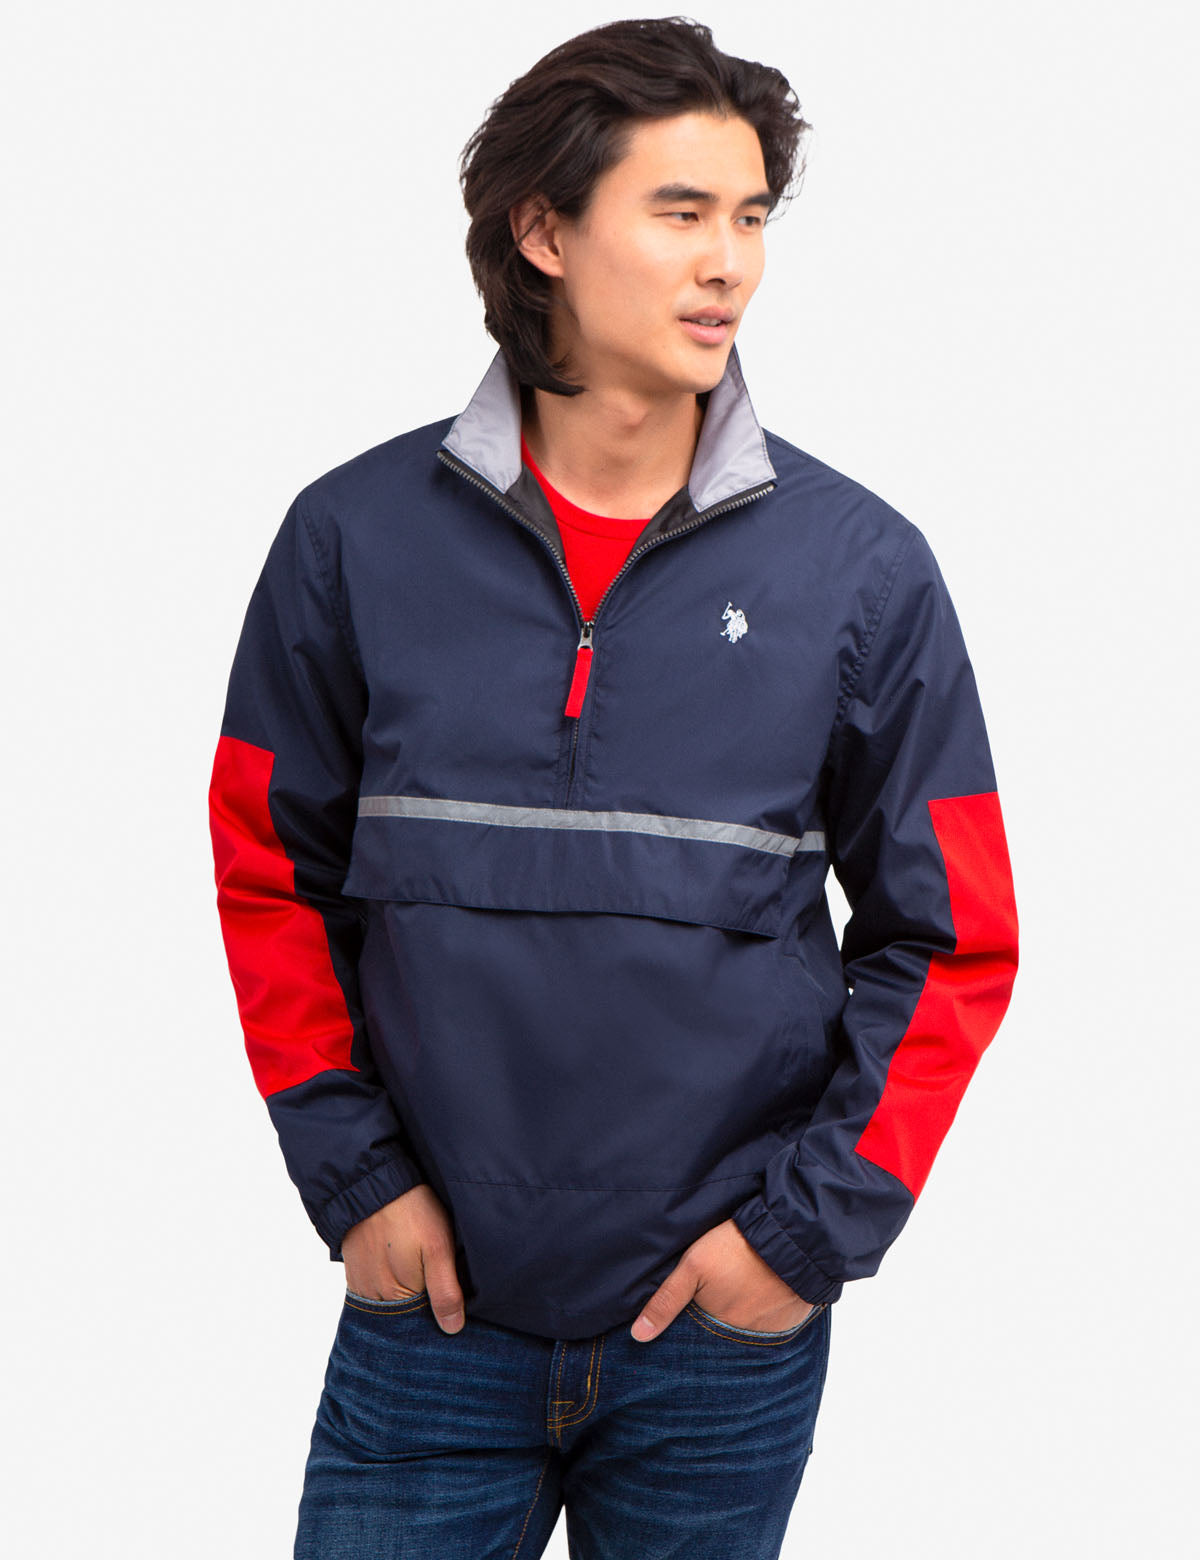 GRAPHIC PULLOVER WITH USPA BACK - U.S. Polo Assn.